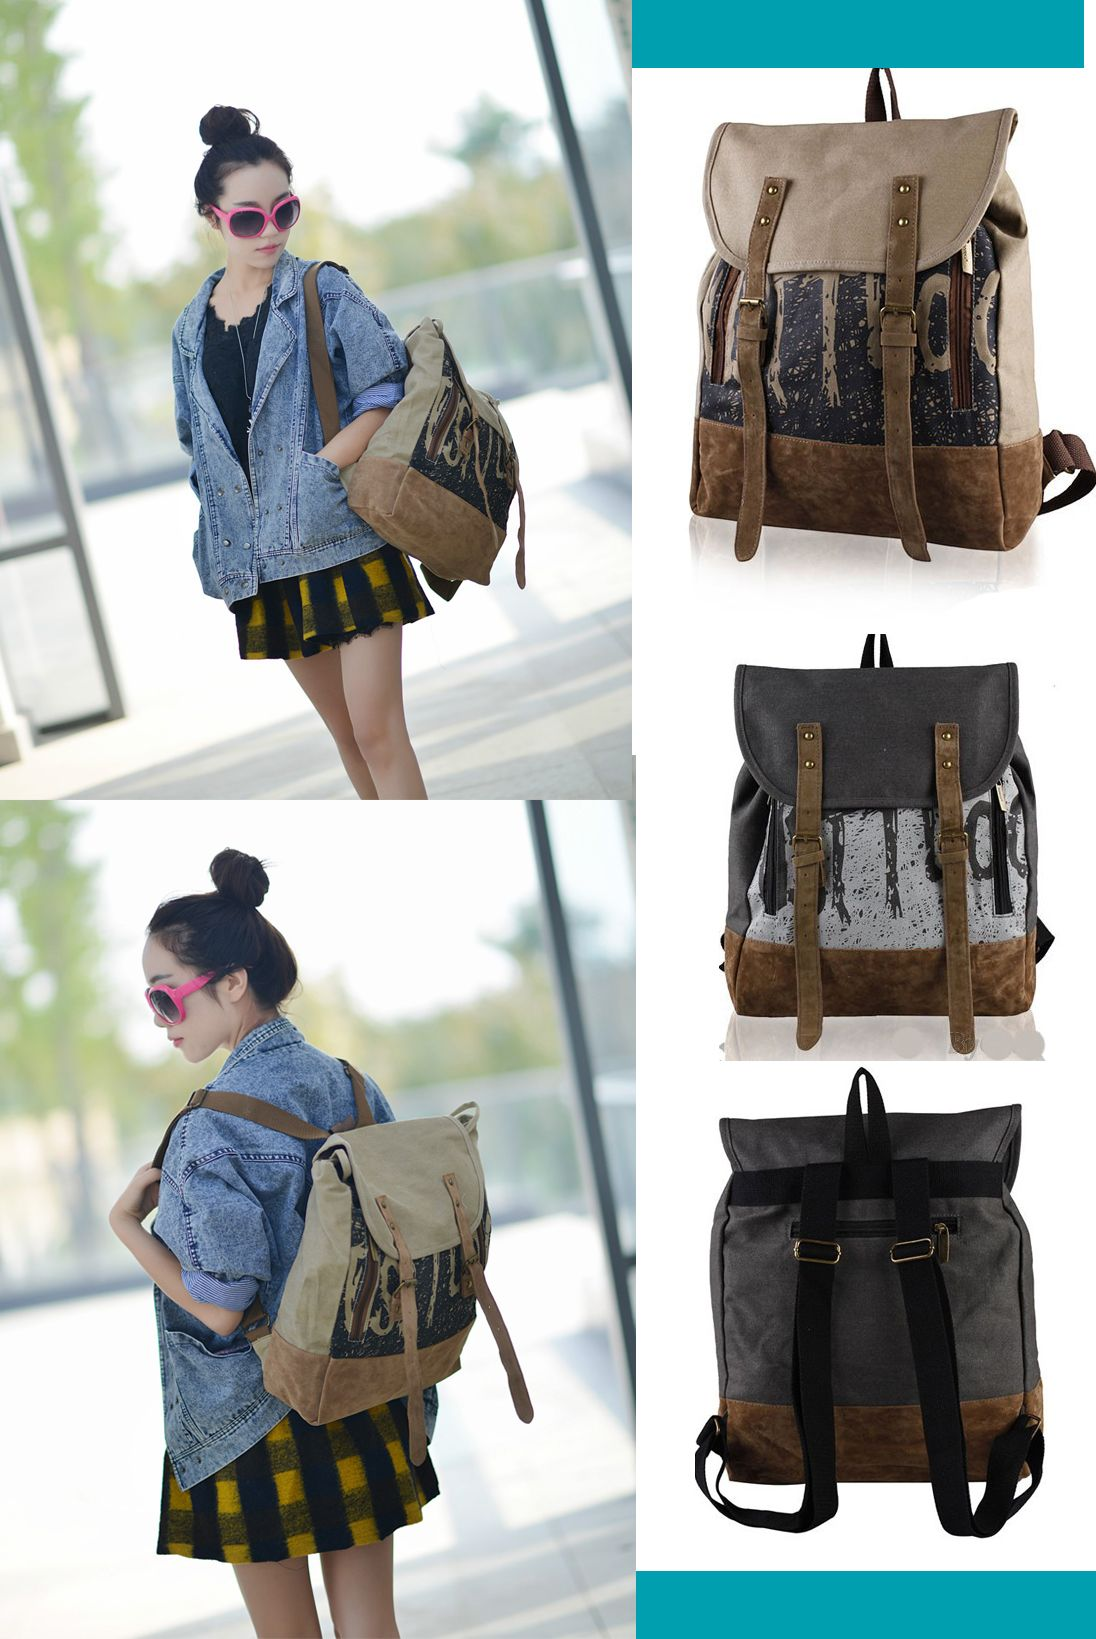 b346d9b1f948 2017 New Arrival Retro Women s Casual Canvas Backpack Laptop Bag backpack  trends 2017